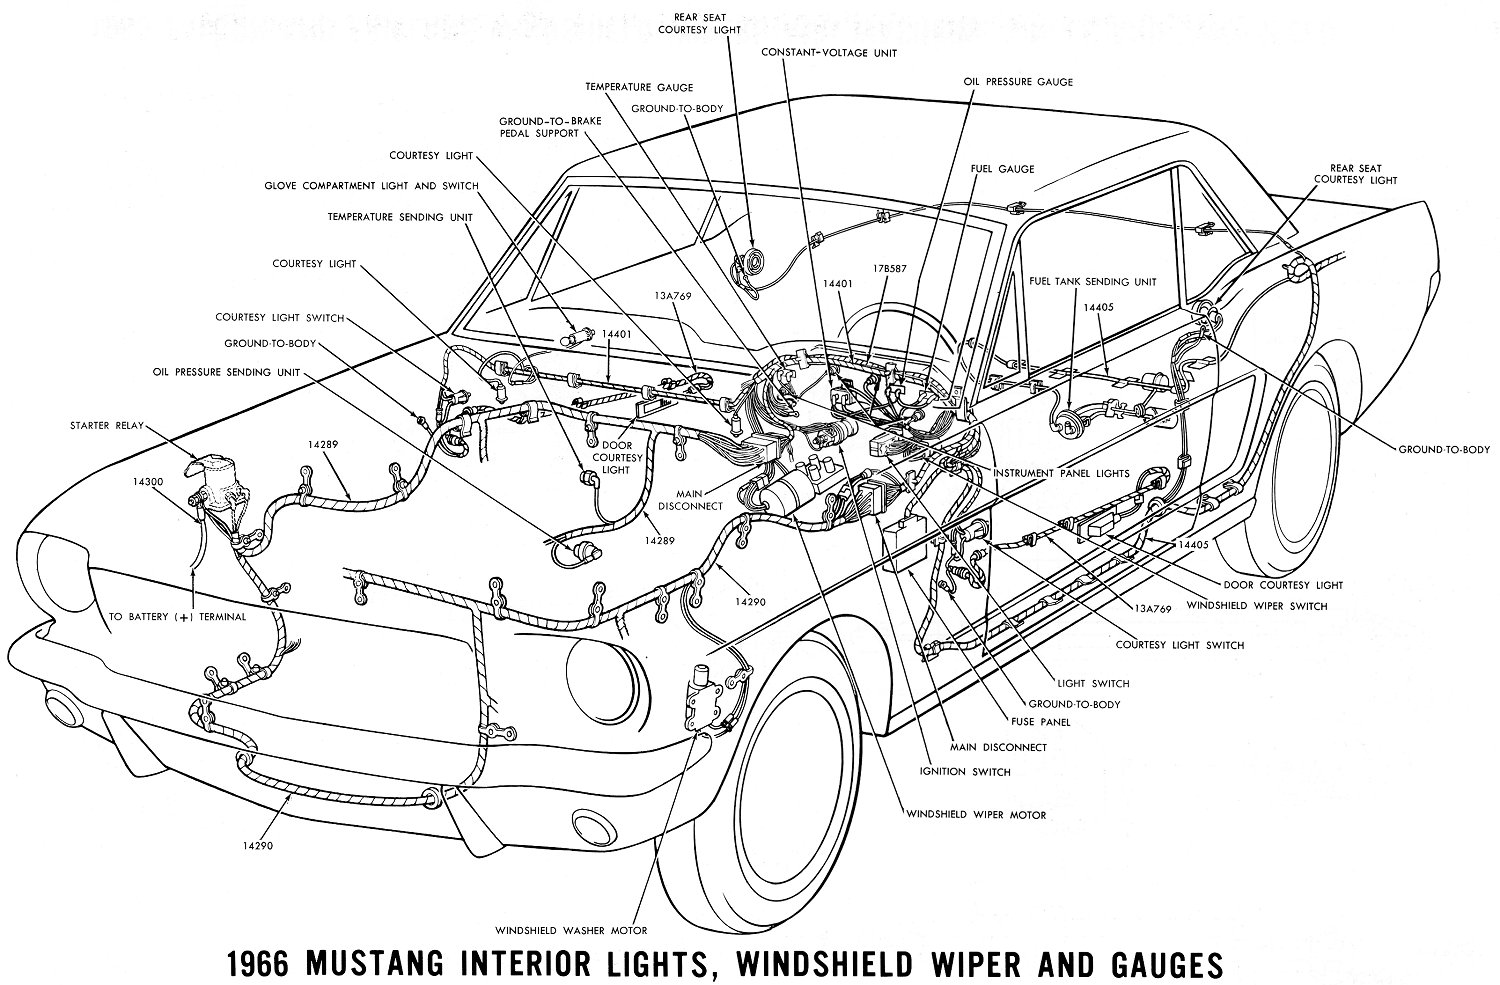 1966 Mustang Wiring Diagrams Average Joe Restoration Ignition Switch Schematic Sm66int